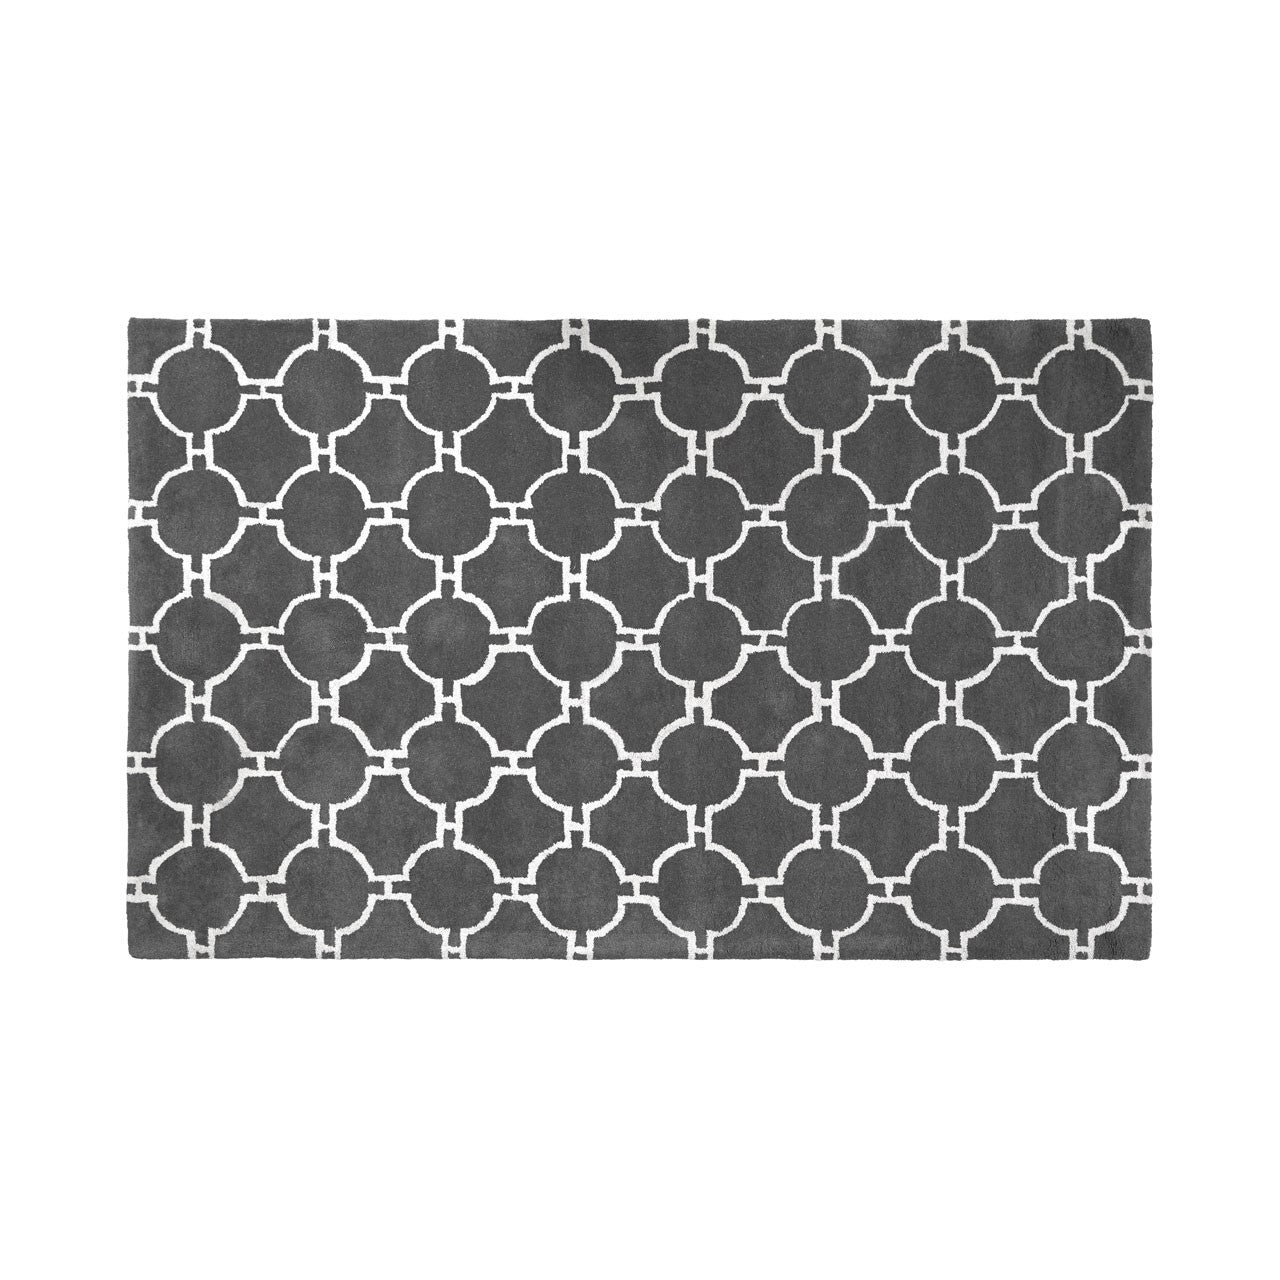 Kensington Townhouse Rug (Grey)